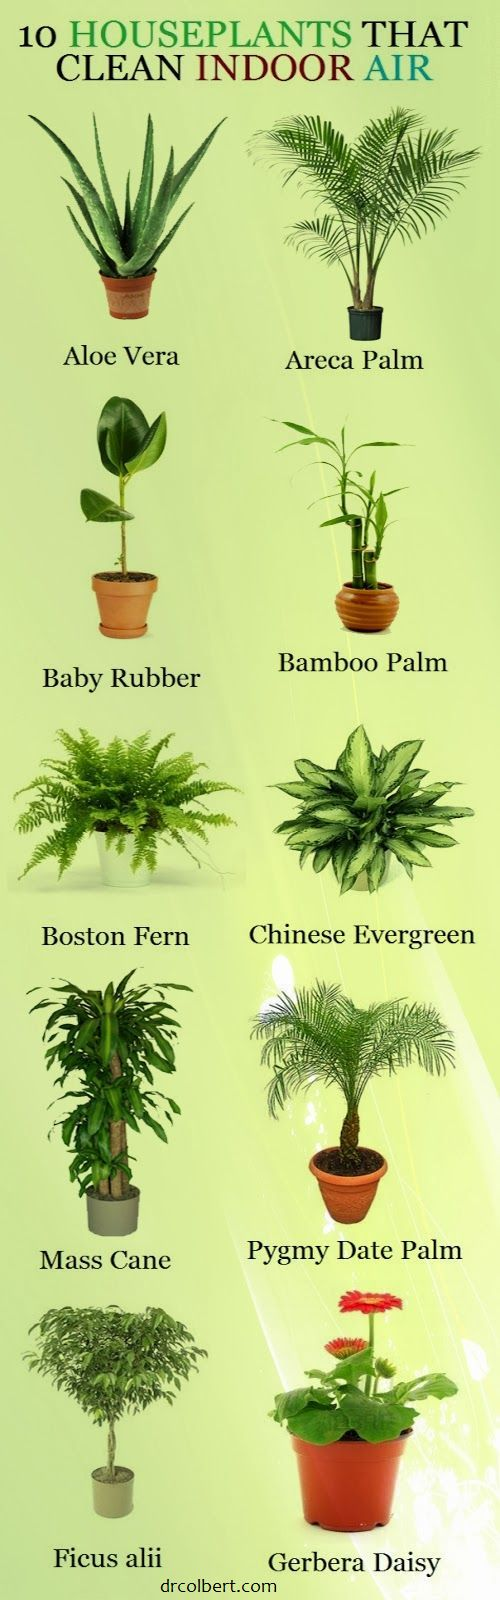 Plants that can help clean the air!